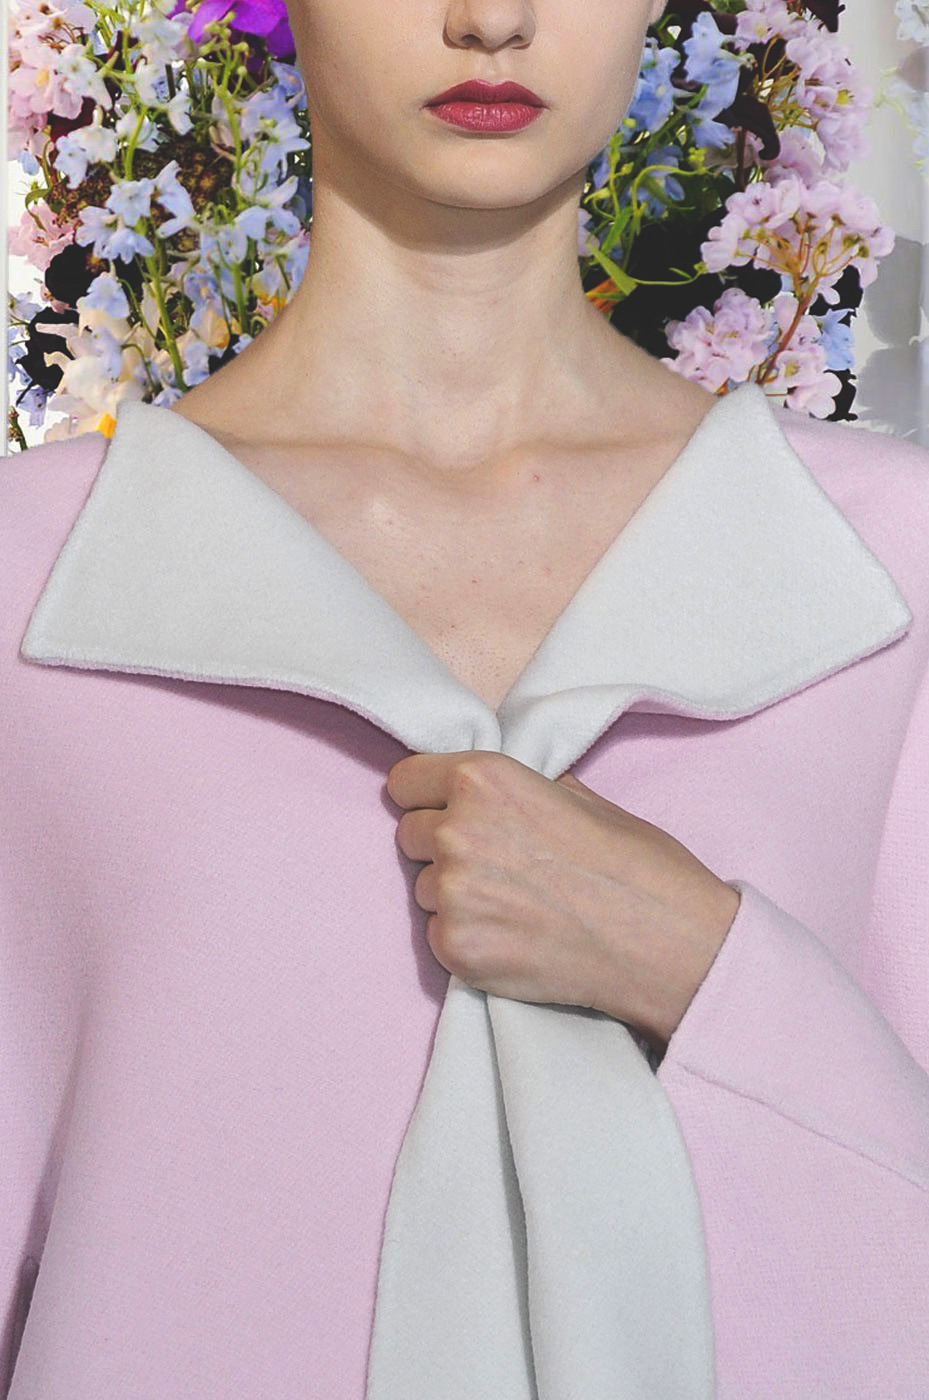 jil sander f/w 2012, details on nastya kusakina x flowers from the decorations on the runway